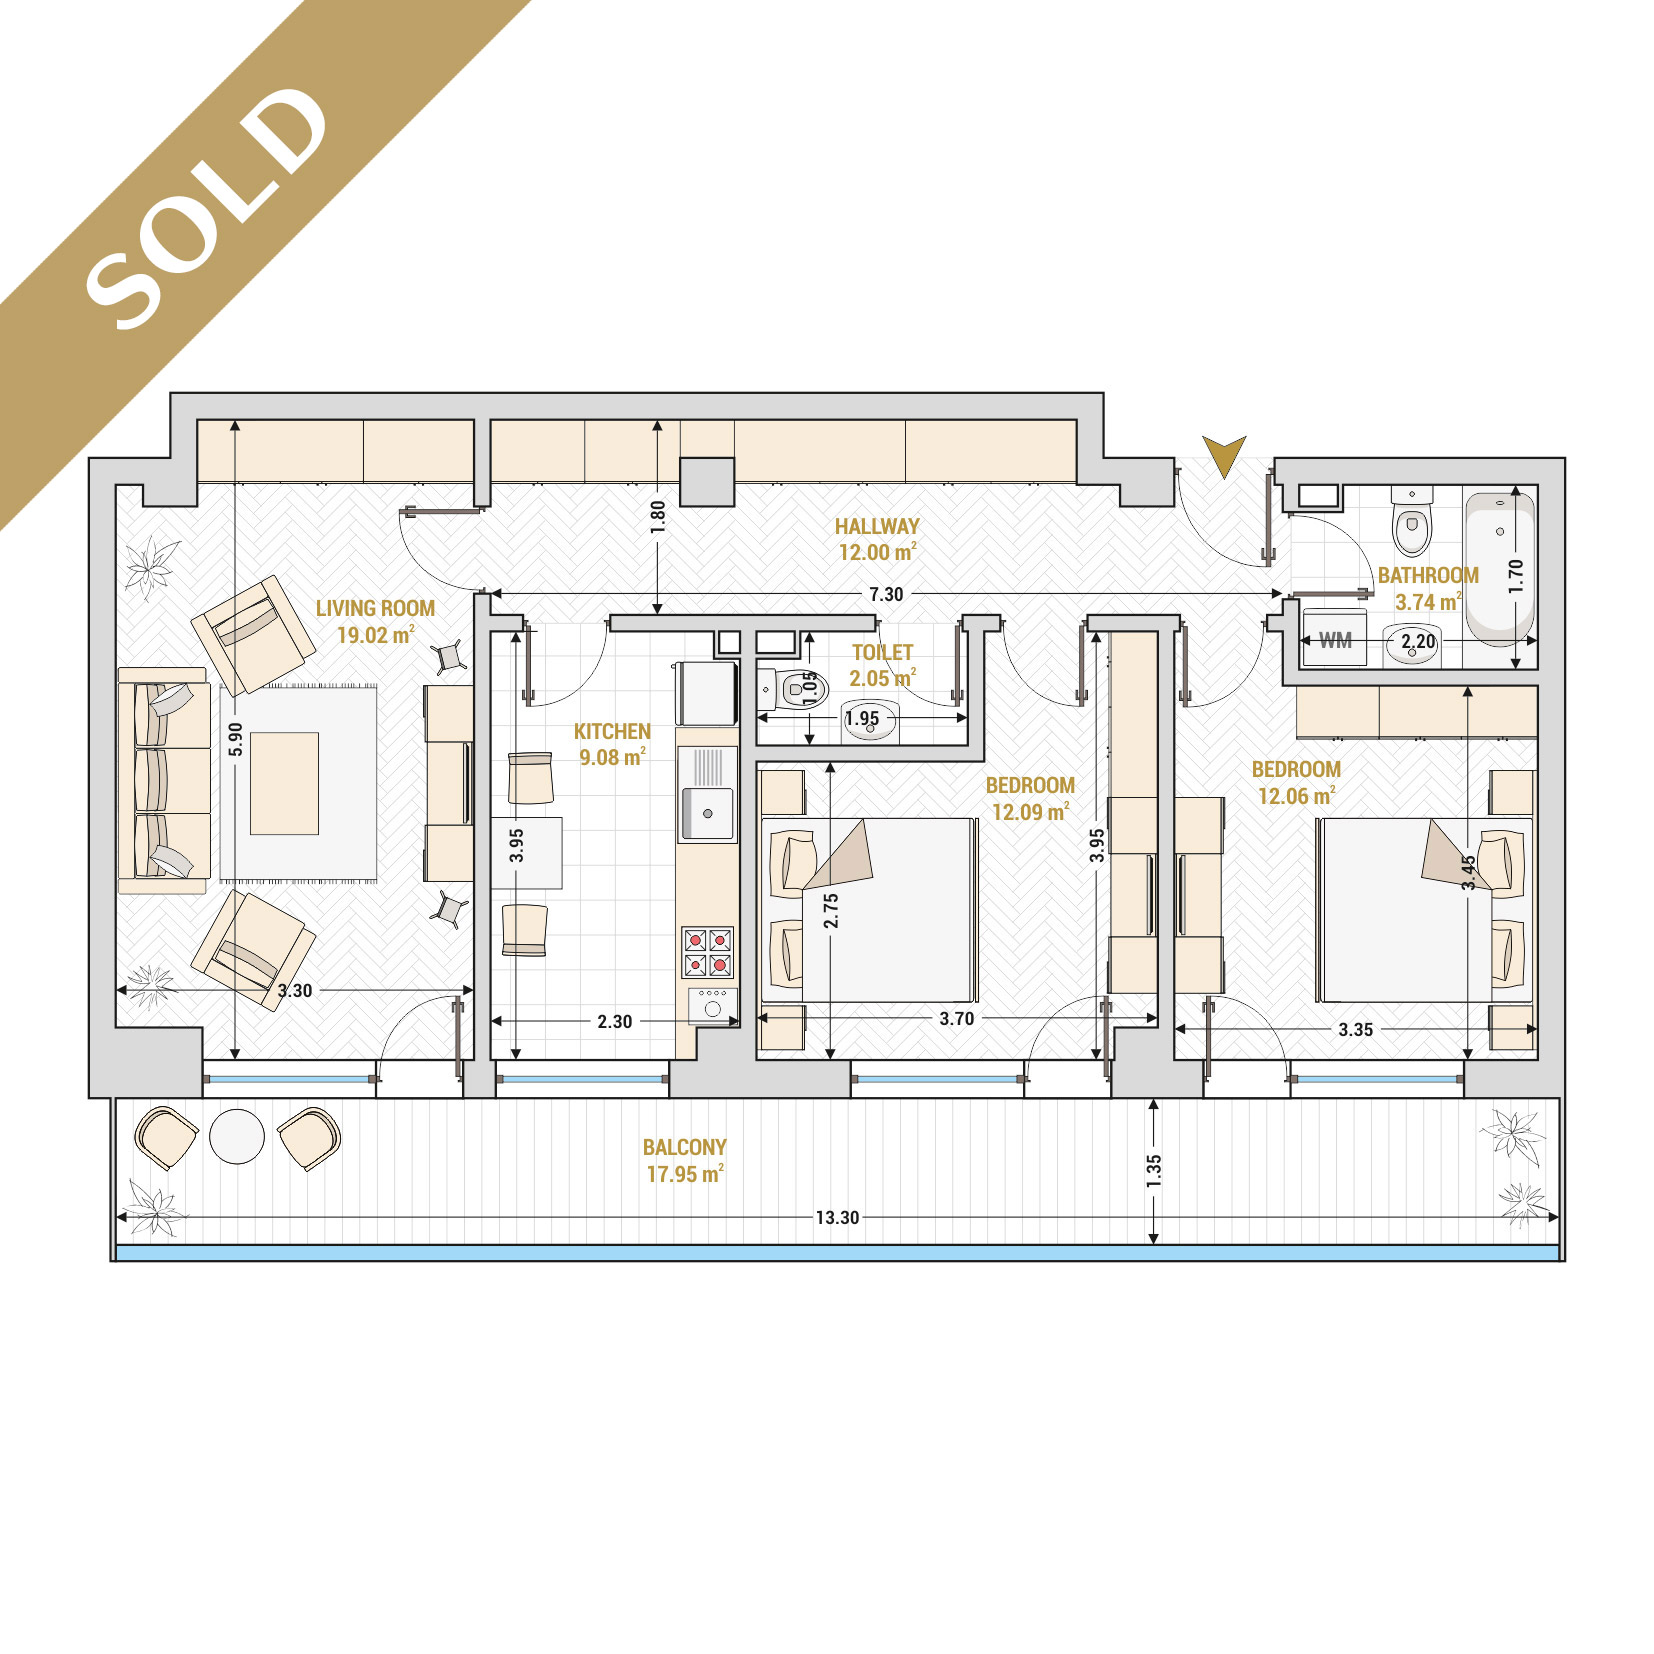 Catedral Residence - 3 Room Apartment for Sale - Bucharest - Romania - Type 5 – S2 - SOLD